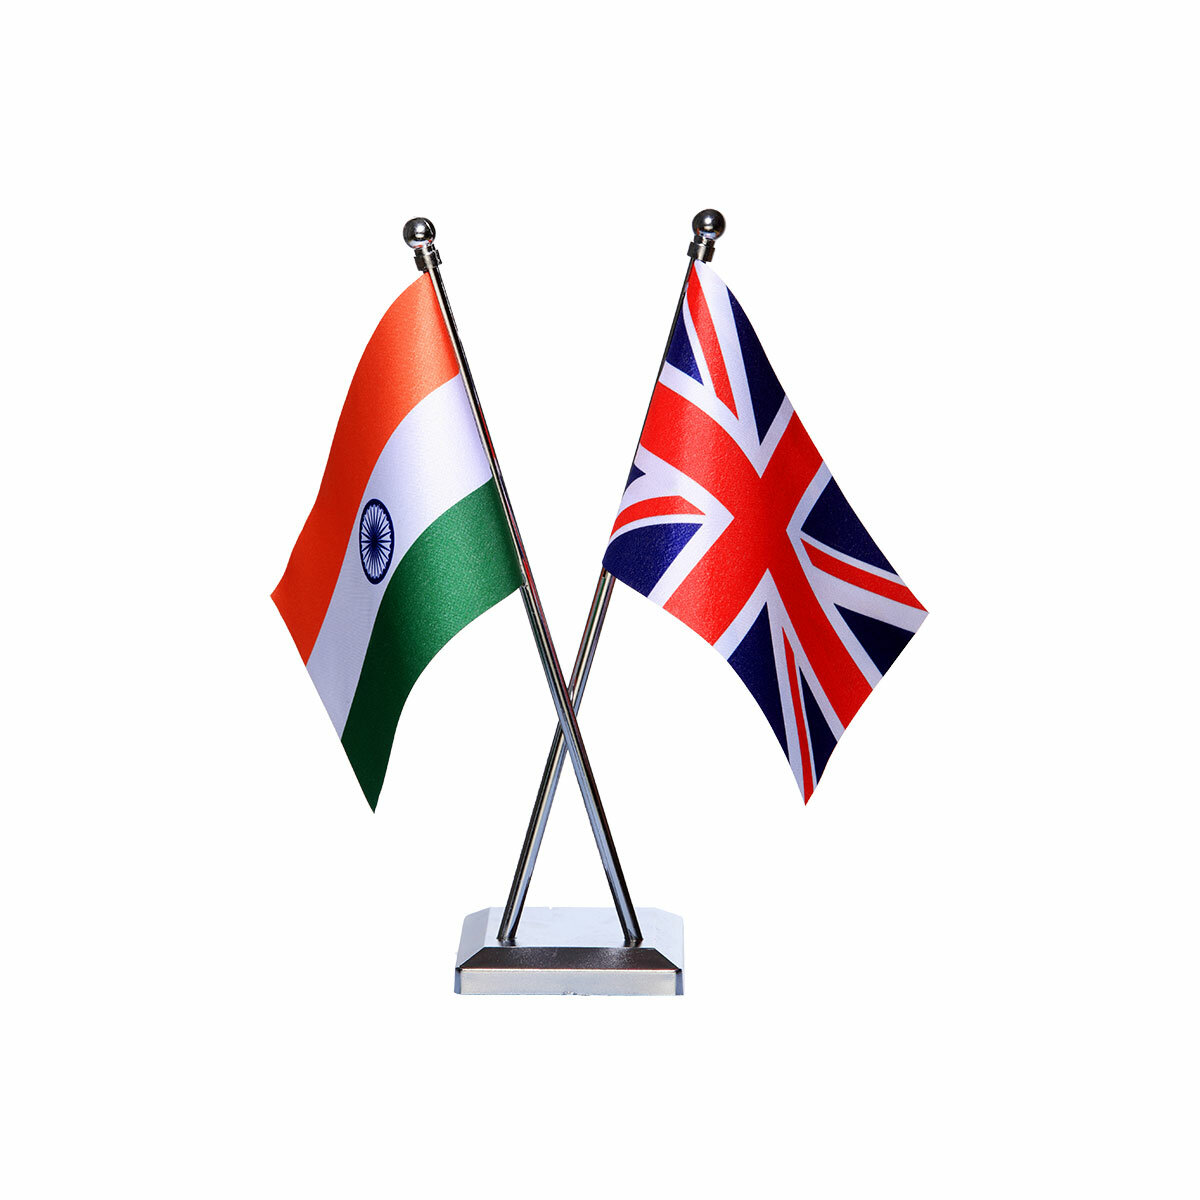 india and uk table or desk flag with a chrome plated plastic stand / base